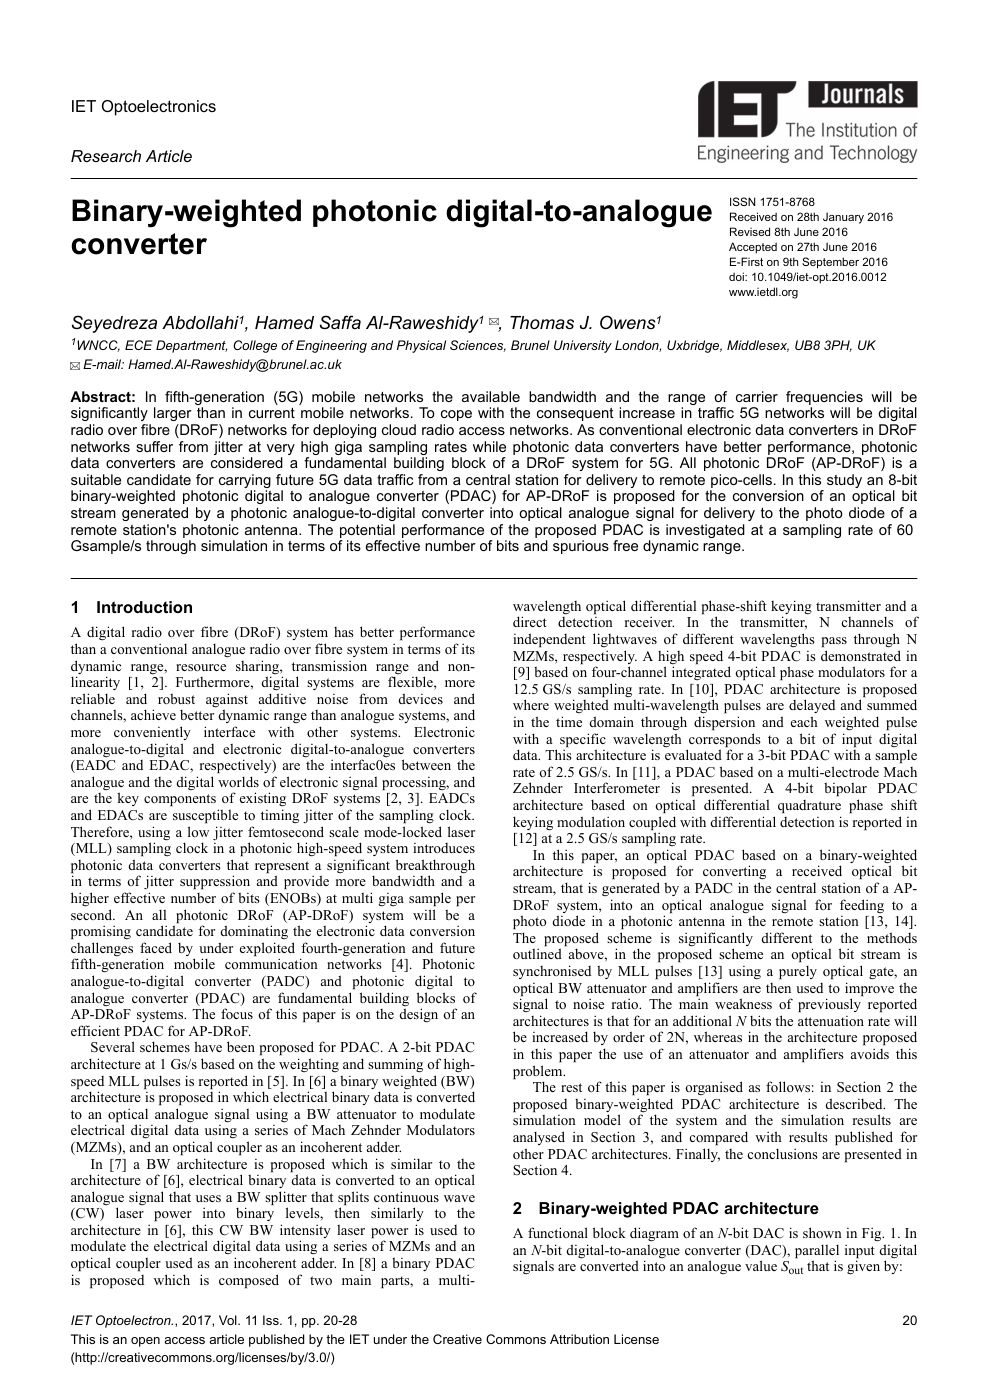 Binary-weighted photonic digital-to-analogue converter